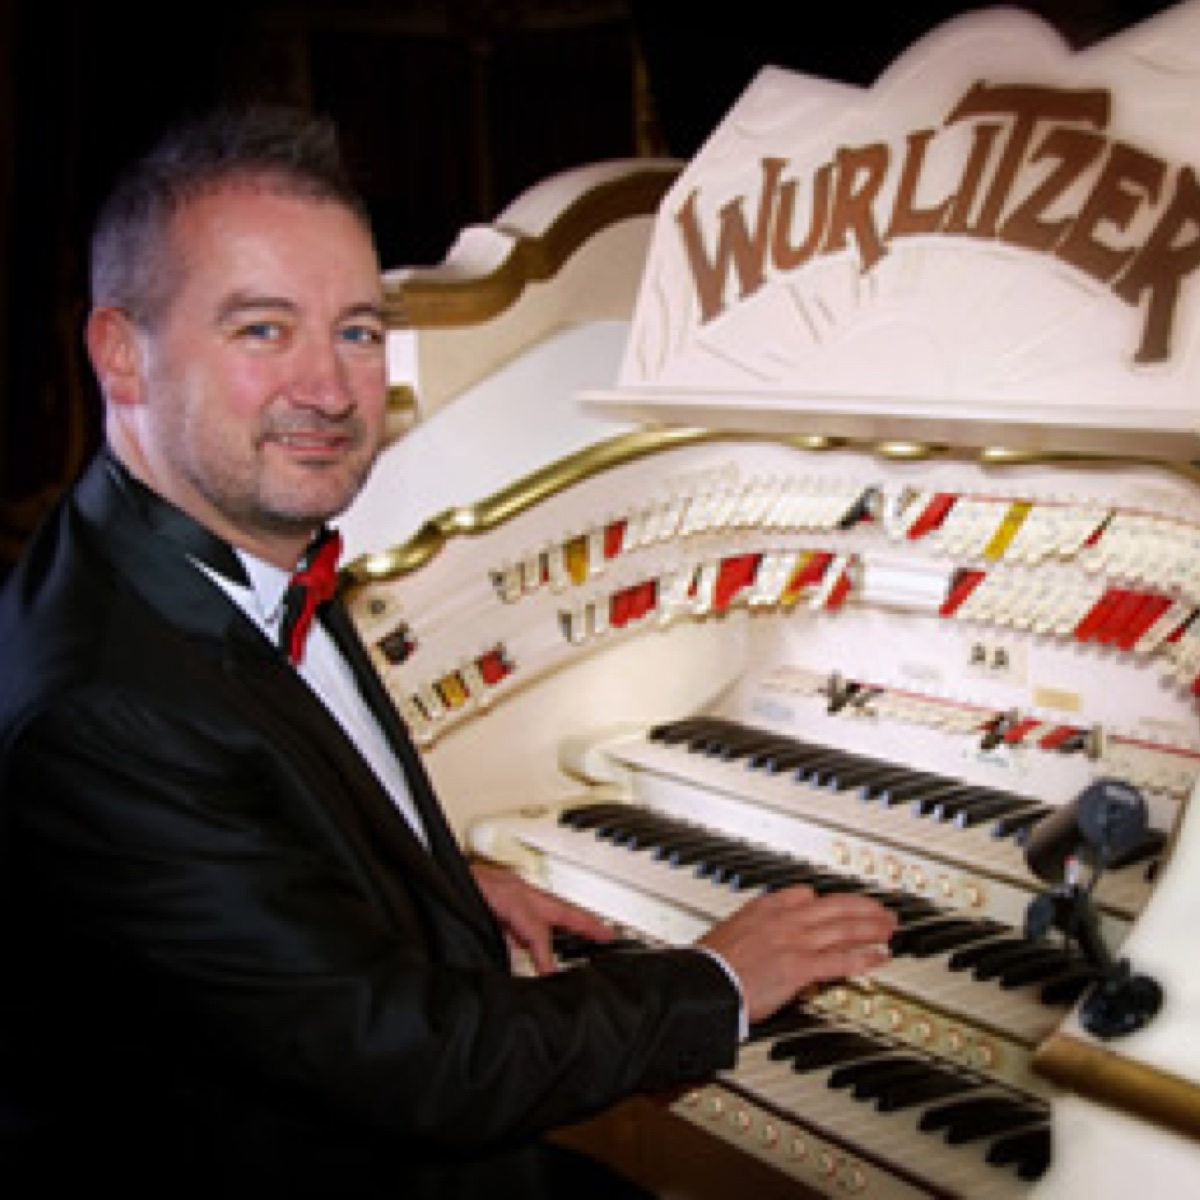 Chris Hopkins organist at the Blackpool Tower Ballroom